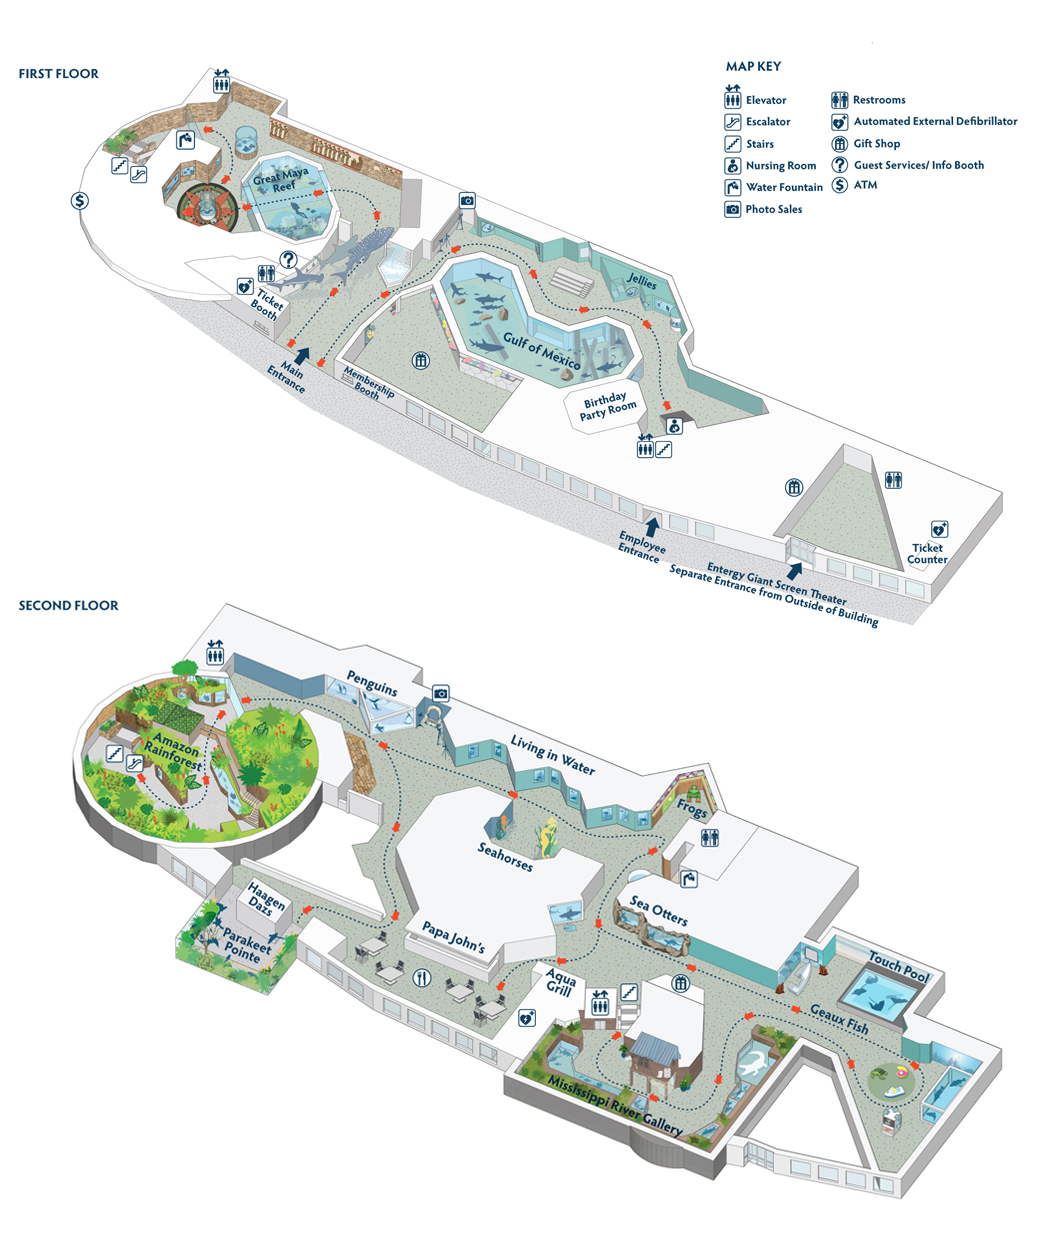 Audubon Aquarium Of the Americas Floor Map Image - Audubon Nature Institute